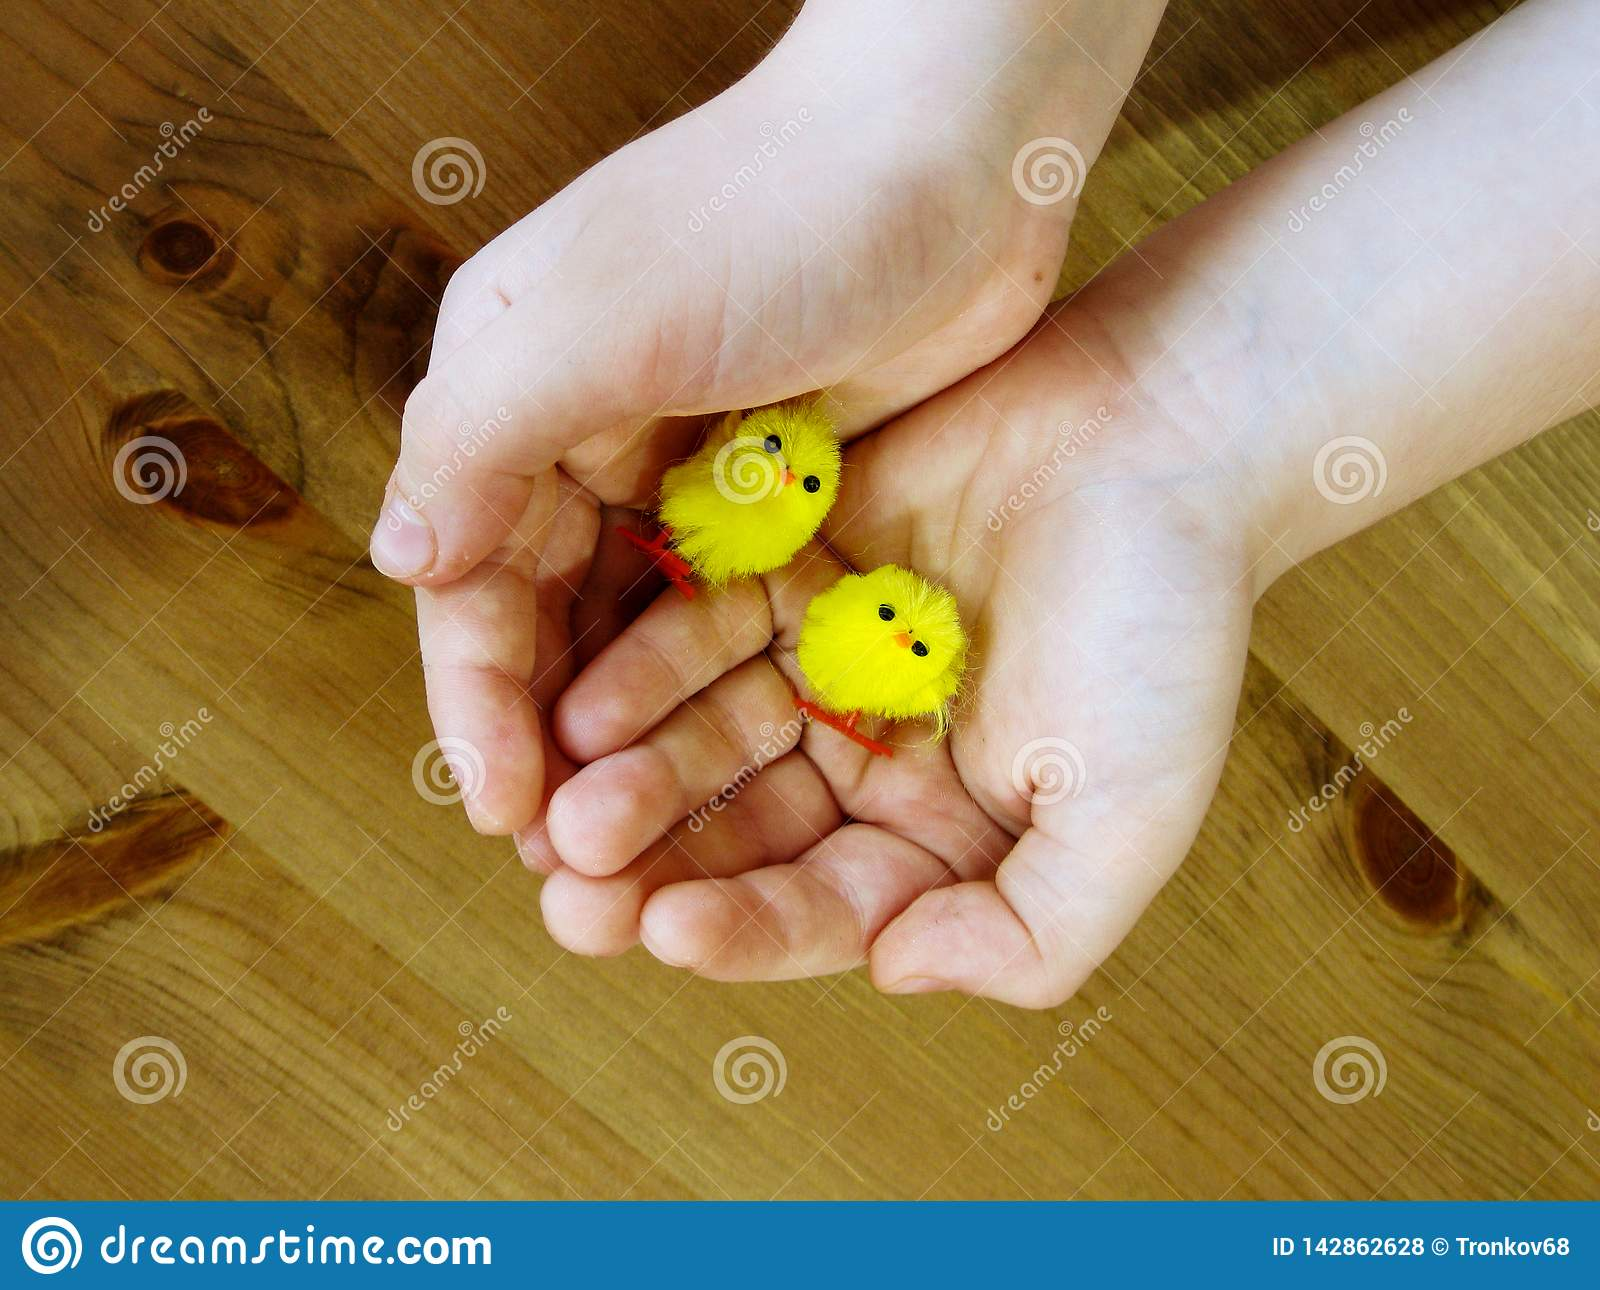 Children`s hands are holding two small toy chickens.